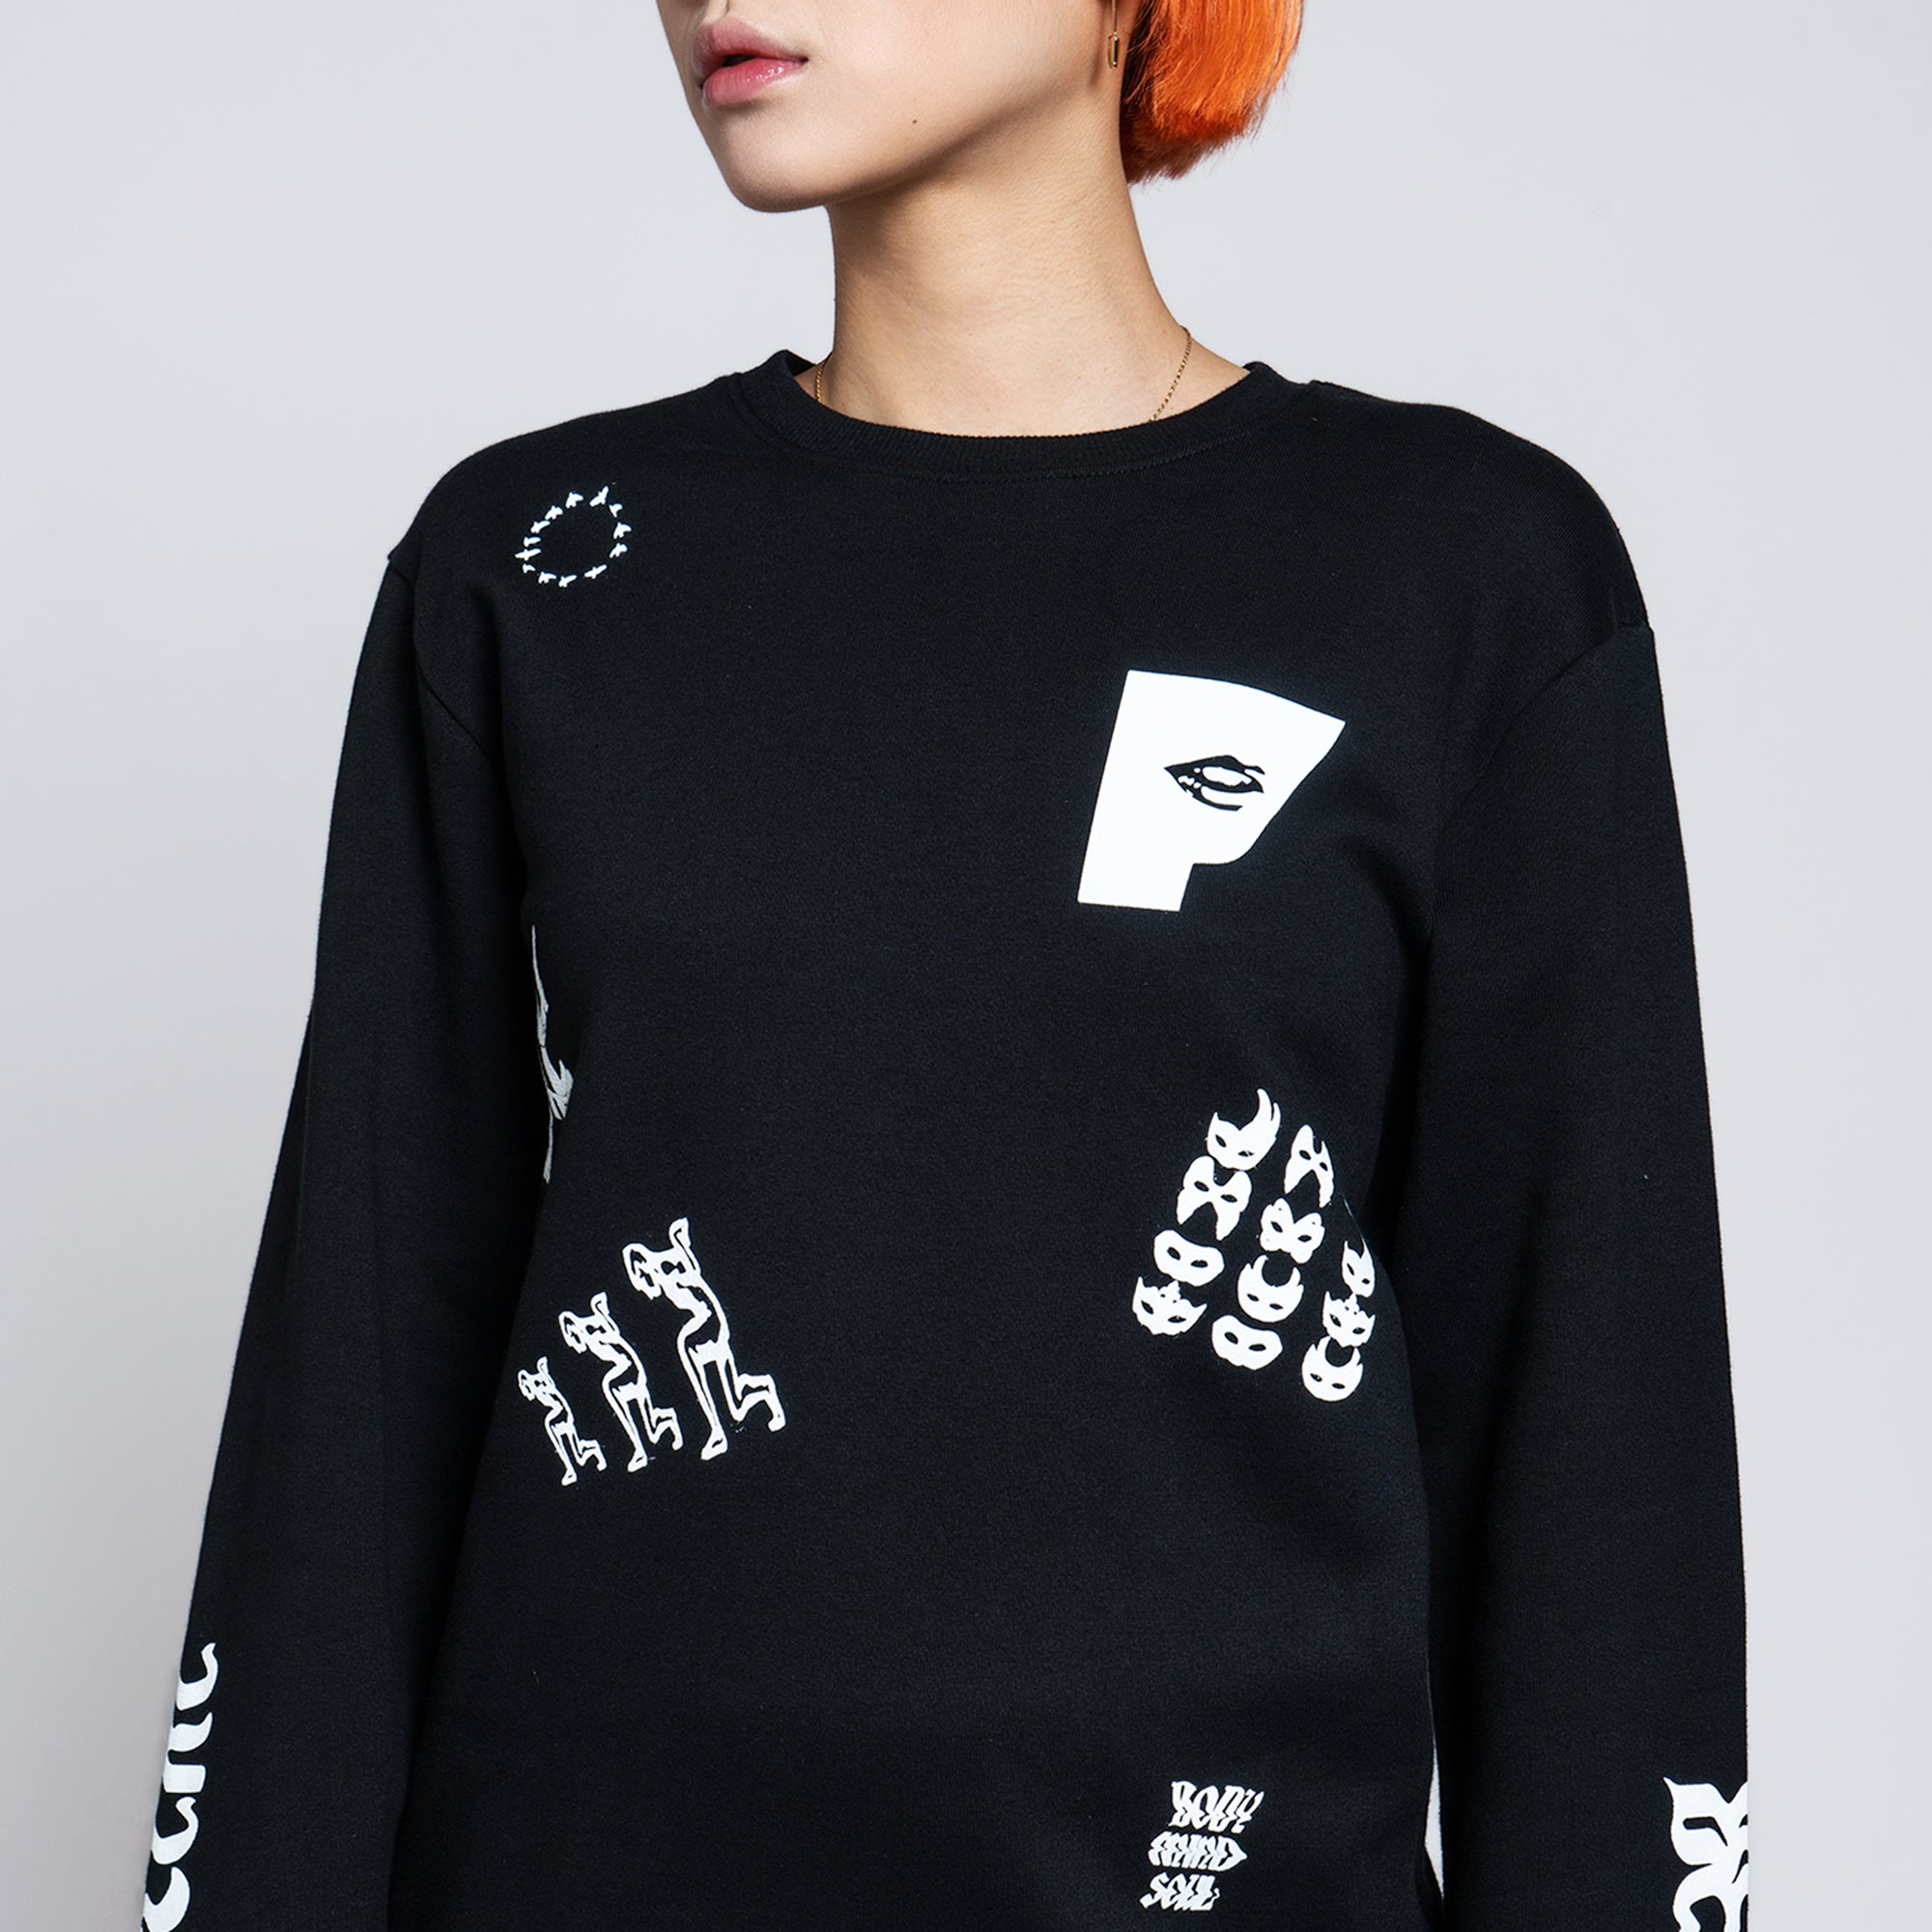 DECONSTRUCTION SWEATER - BLACK